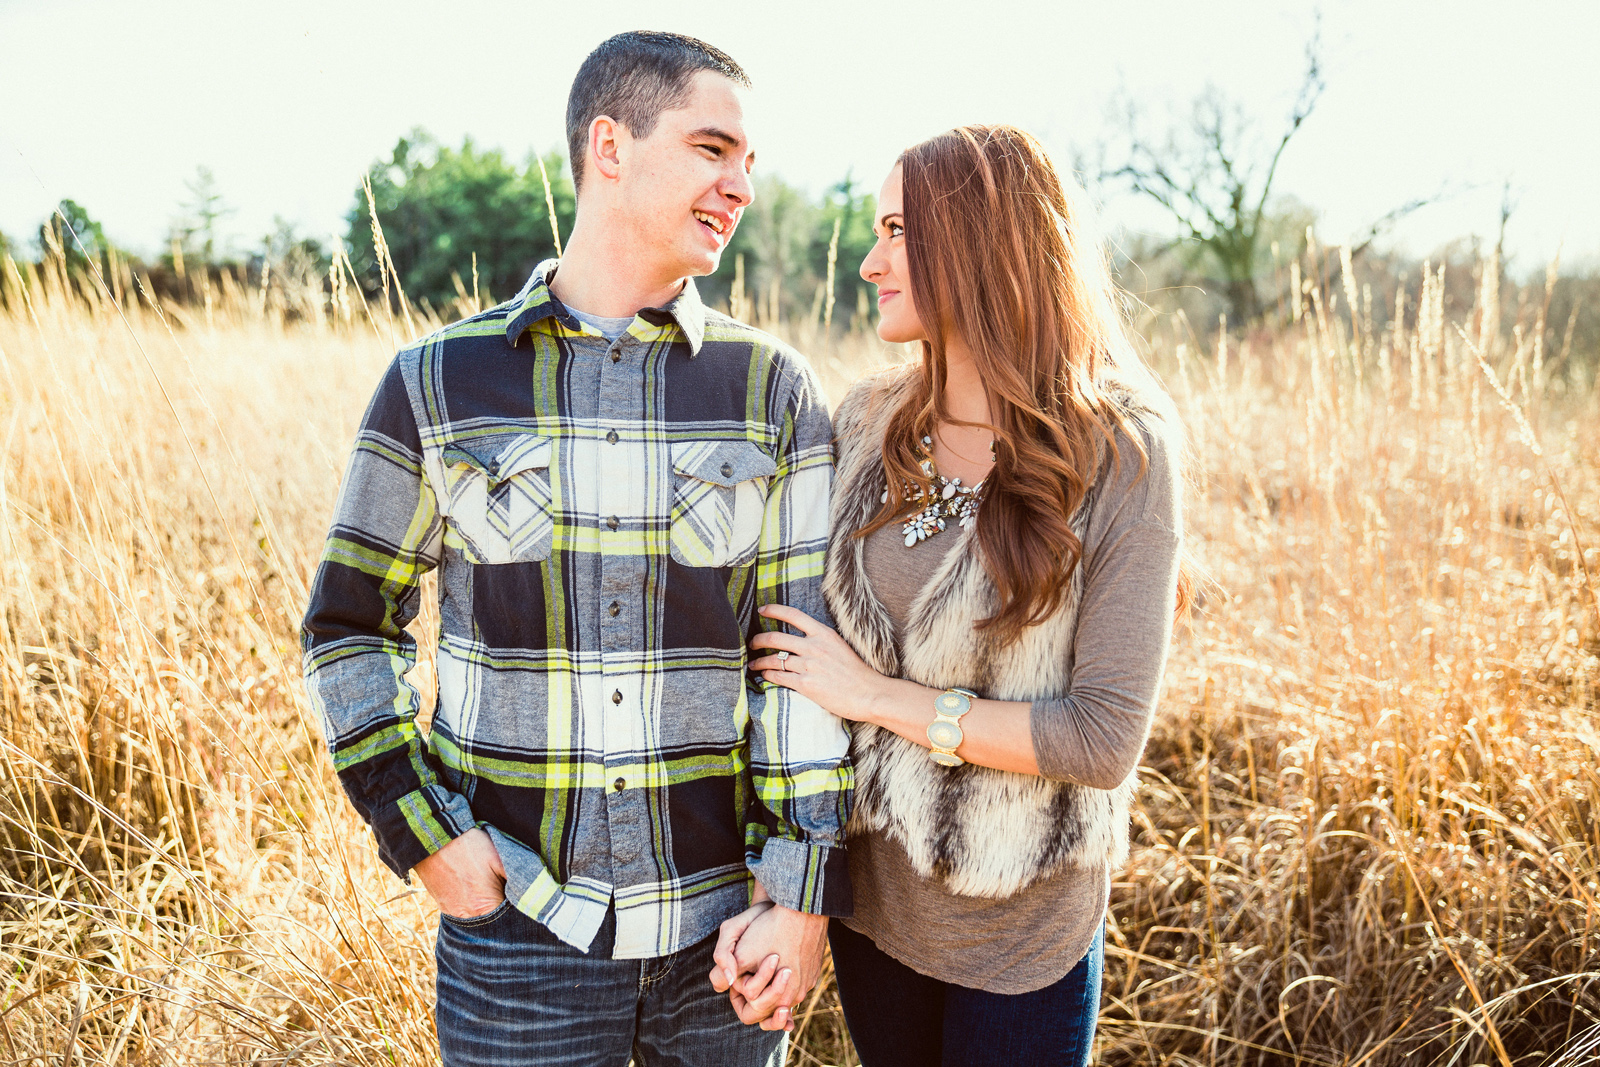 Oldani-Photography-St-Charles-August-A-Busch-Memorial-Area-Engagement-Session-engagement-photos_20141128_151559.jpg